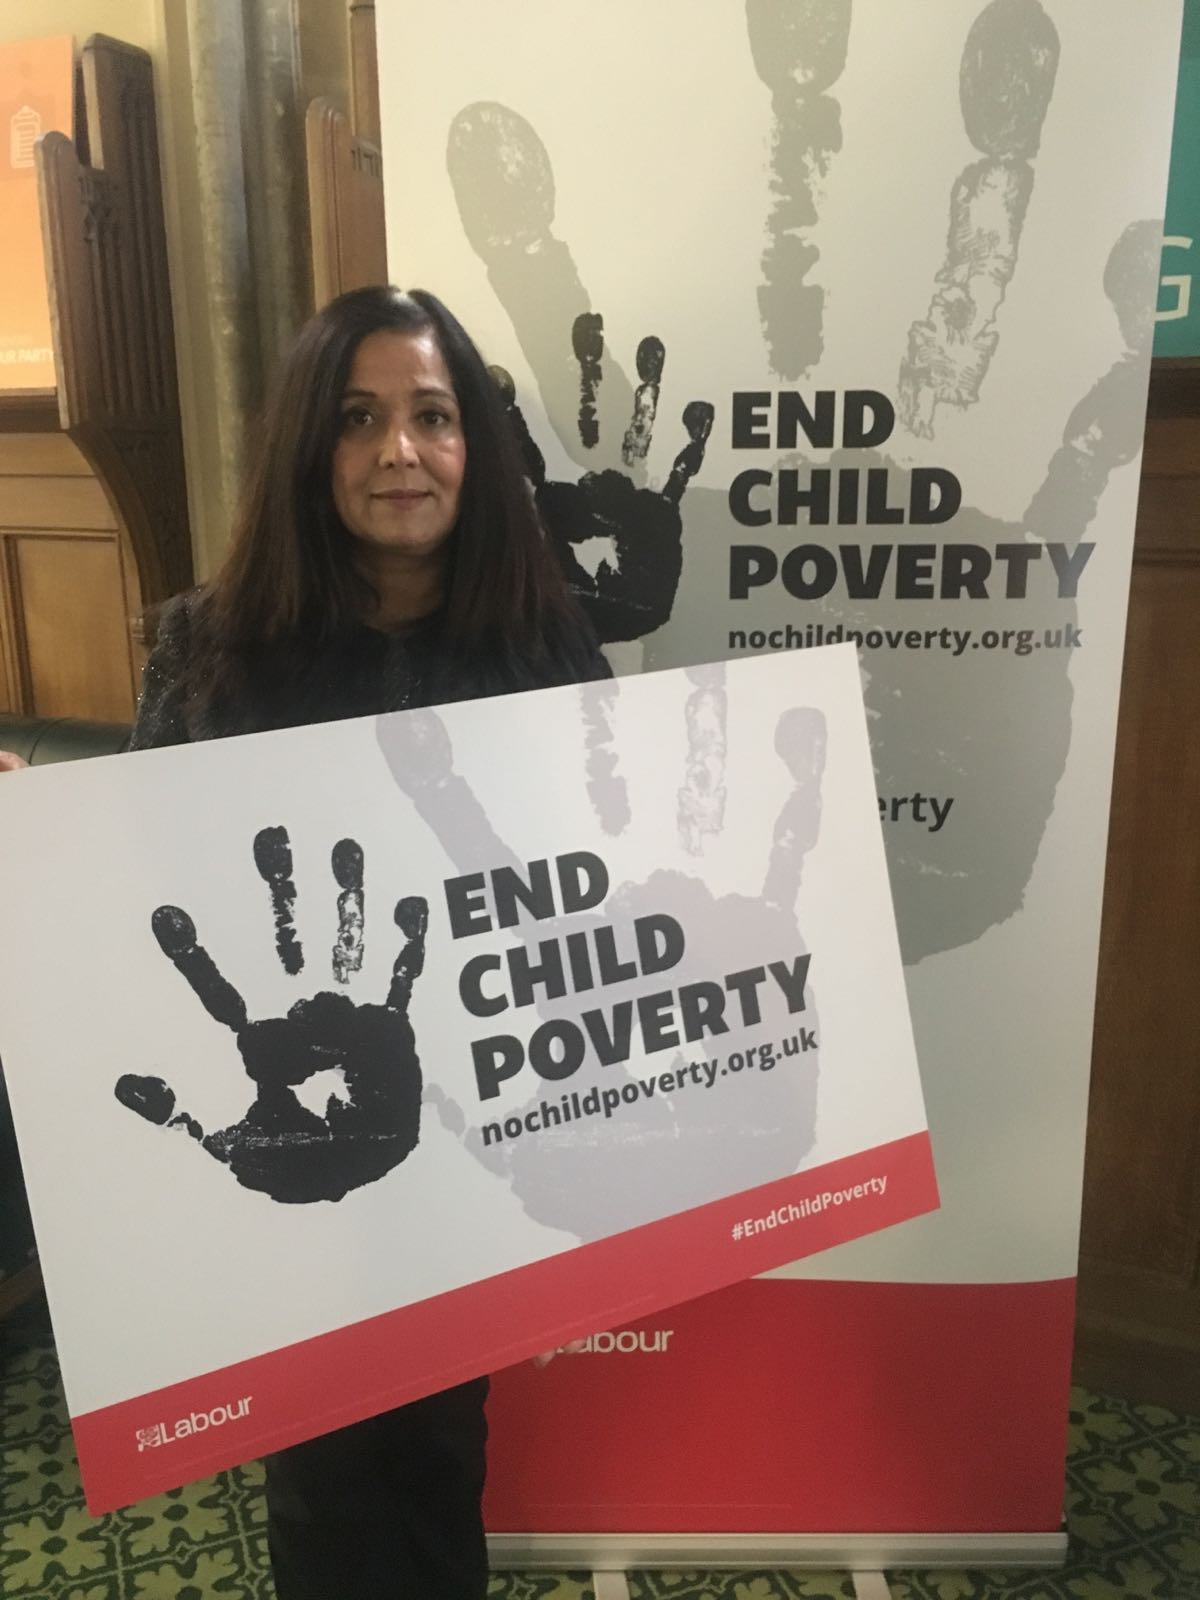 Yasmin_-_End_Child_Poverty.jpeg